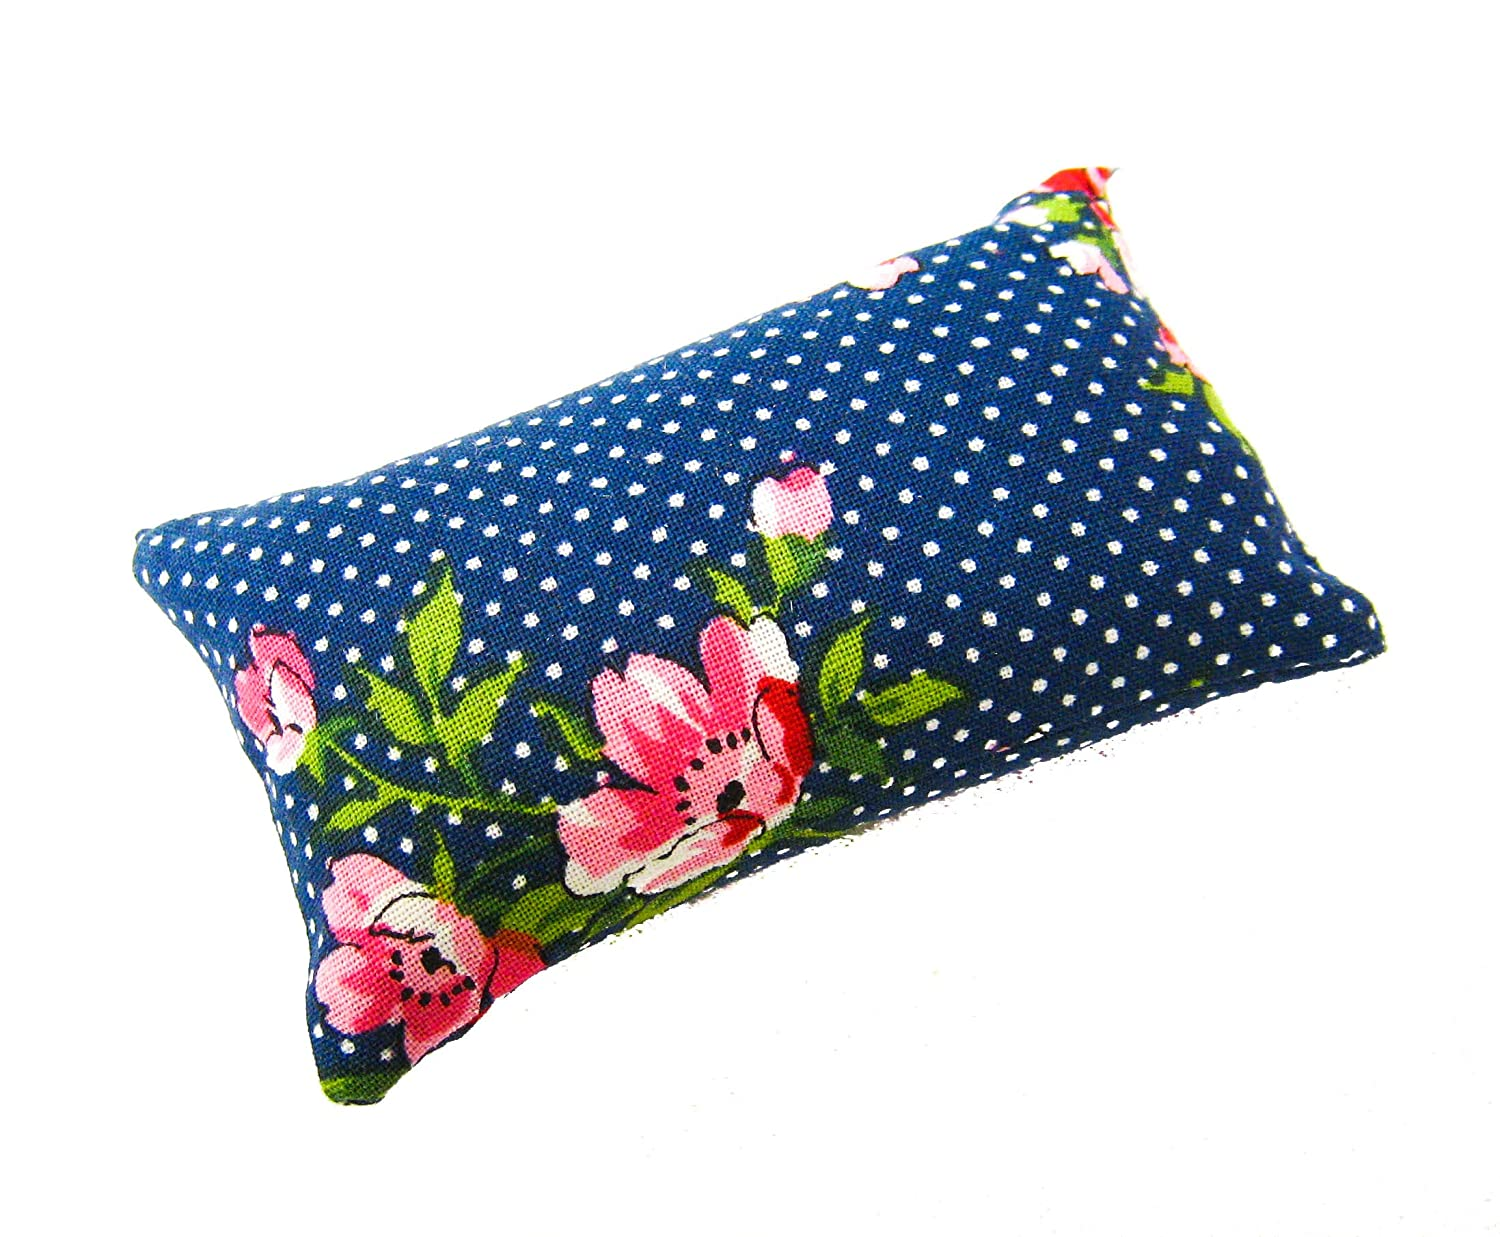 Handmade in USA 2x3, Blue Pinup Retro Nakpunar Emery Sewing Pincushion Filled with Abrasive Emery Sand